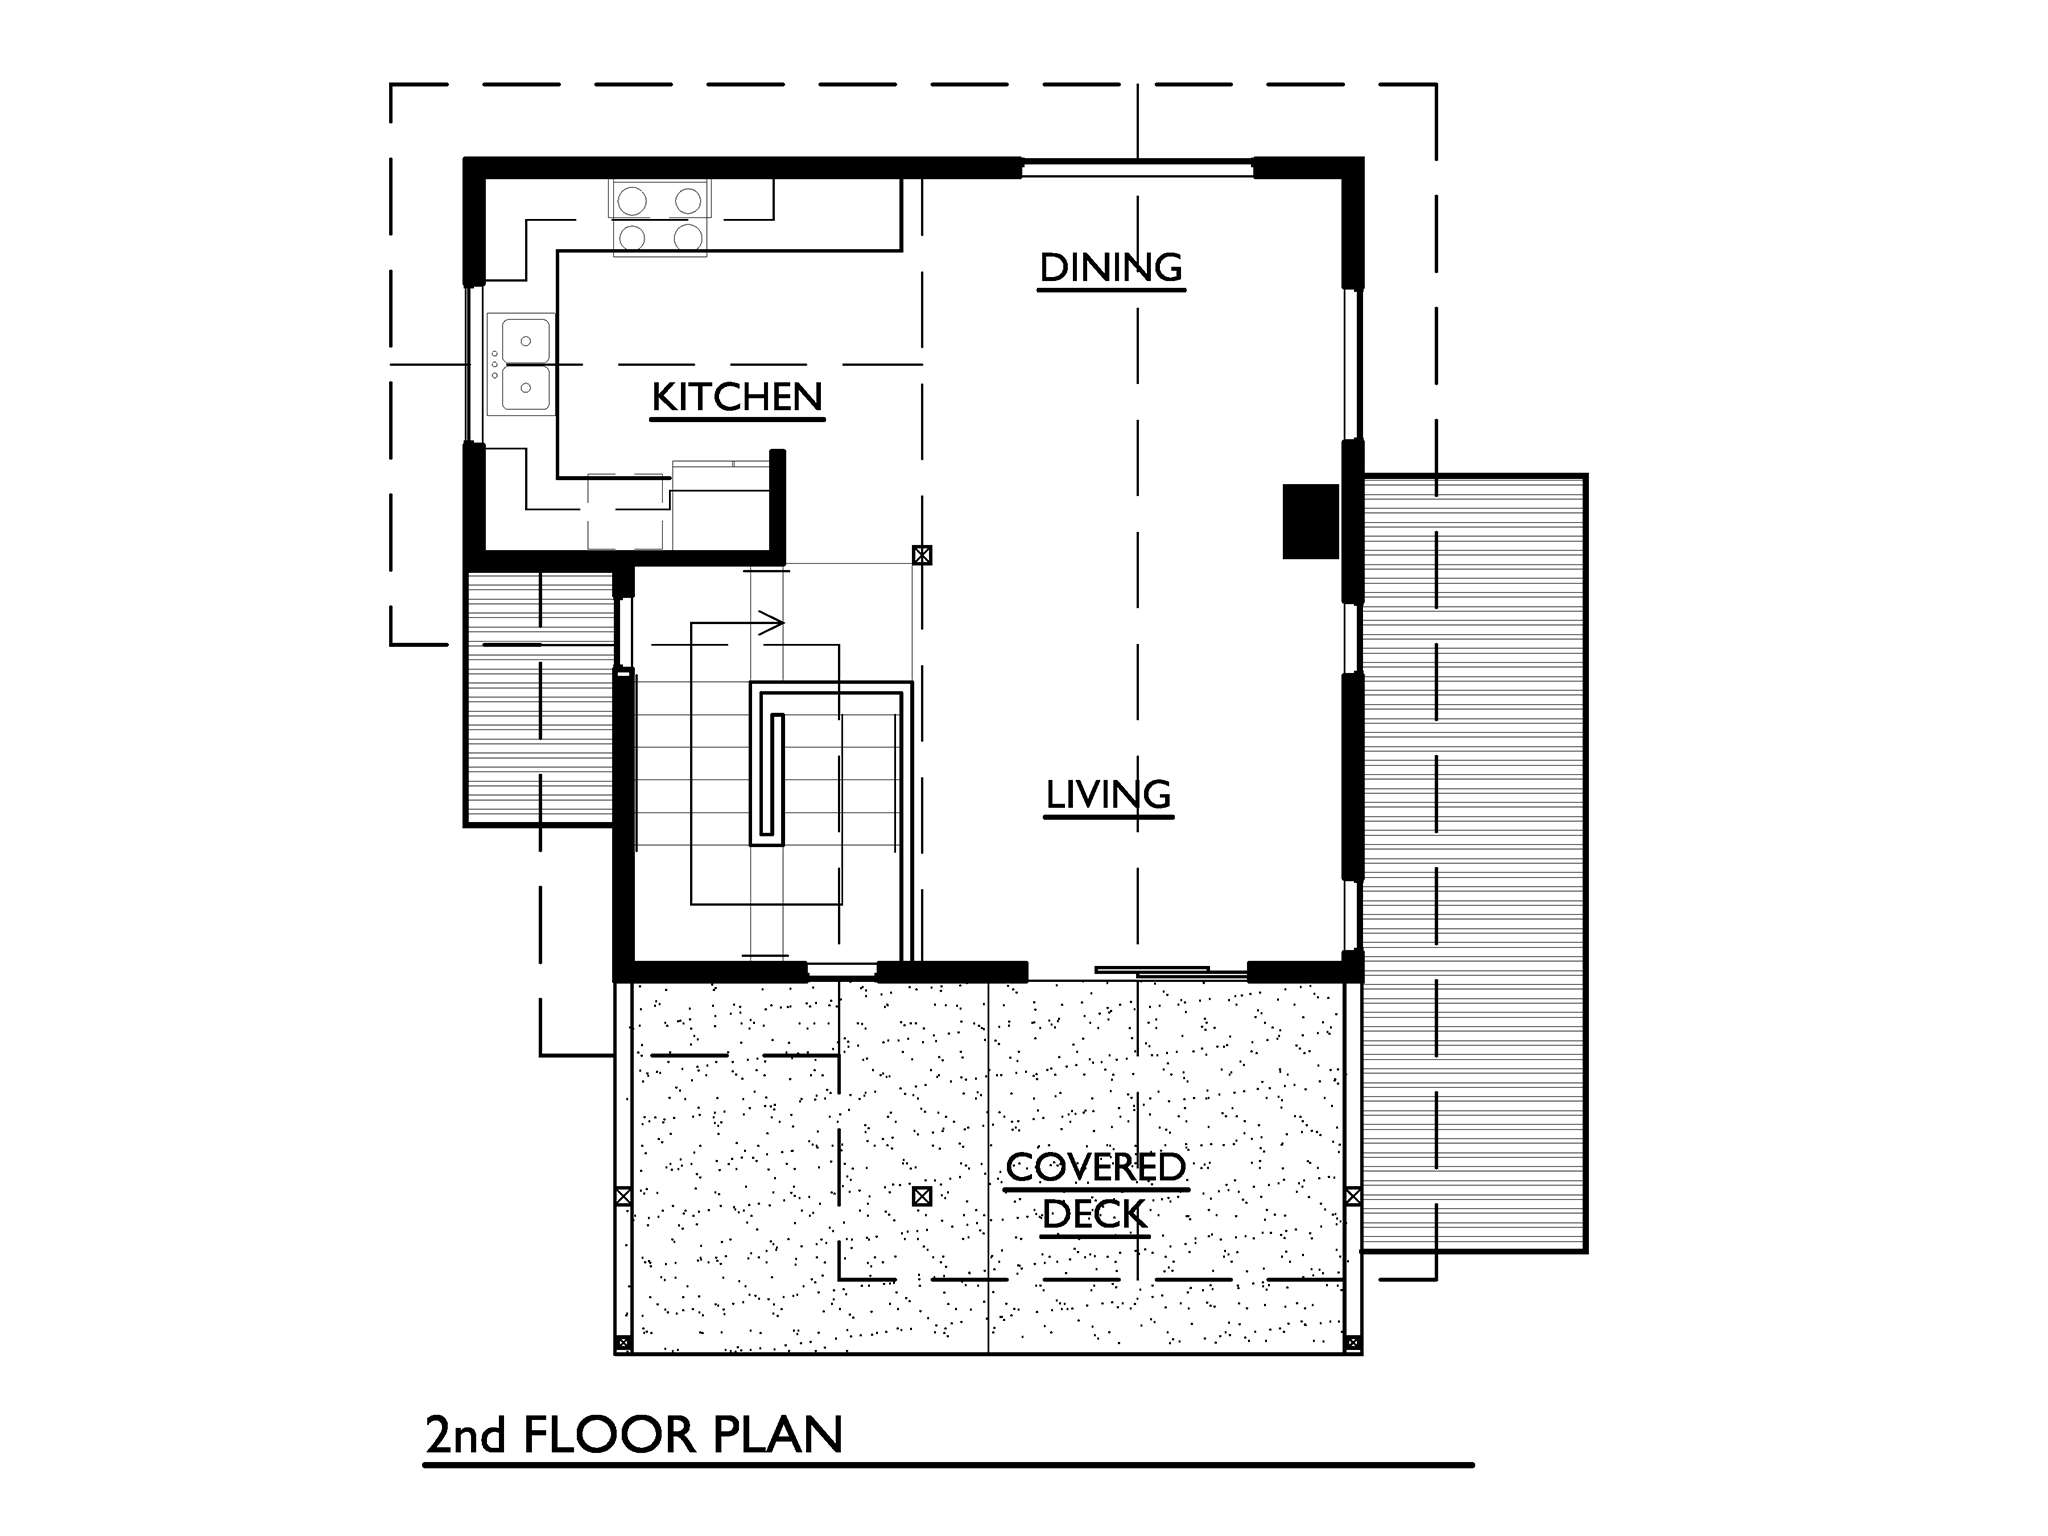 Accessory dwelling unit floor plans gurus floor for Accessory dwelling unit plans